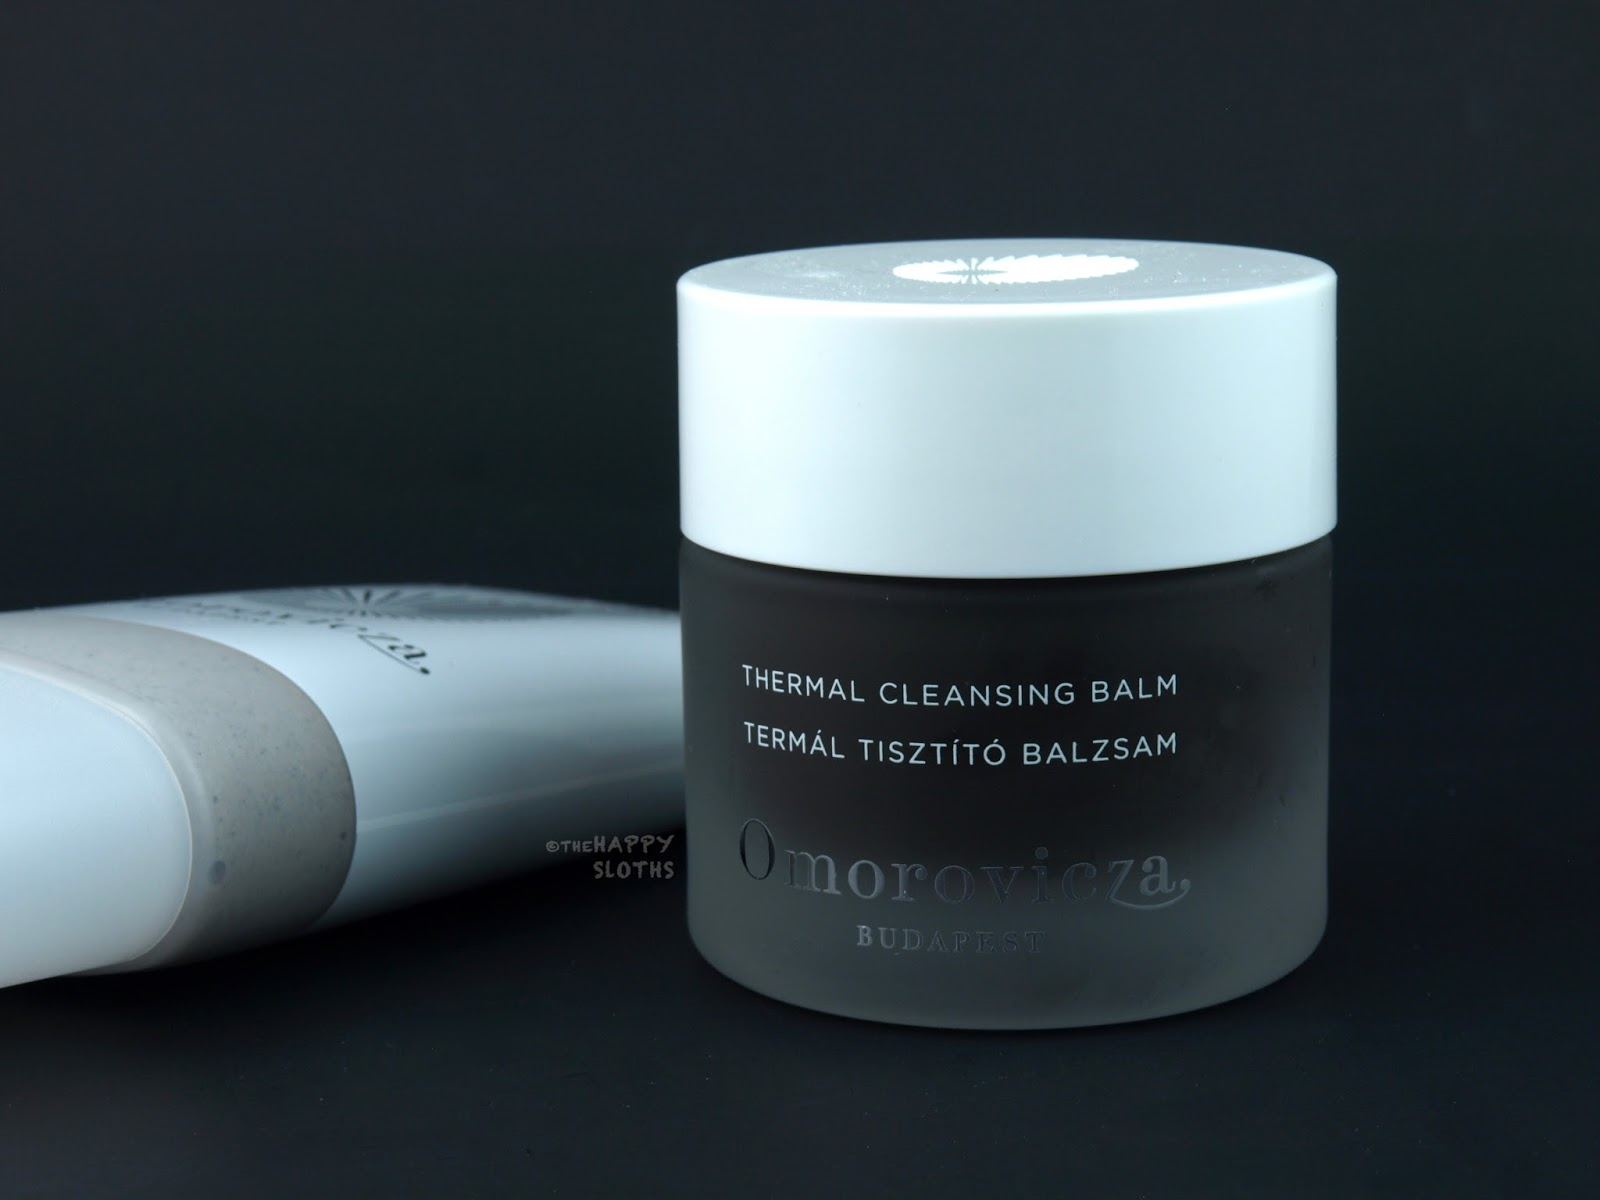 Omorovicza Thermal Cleansing Balm: Review and Swatches